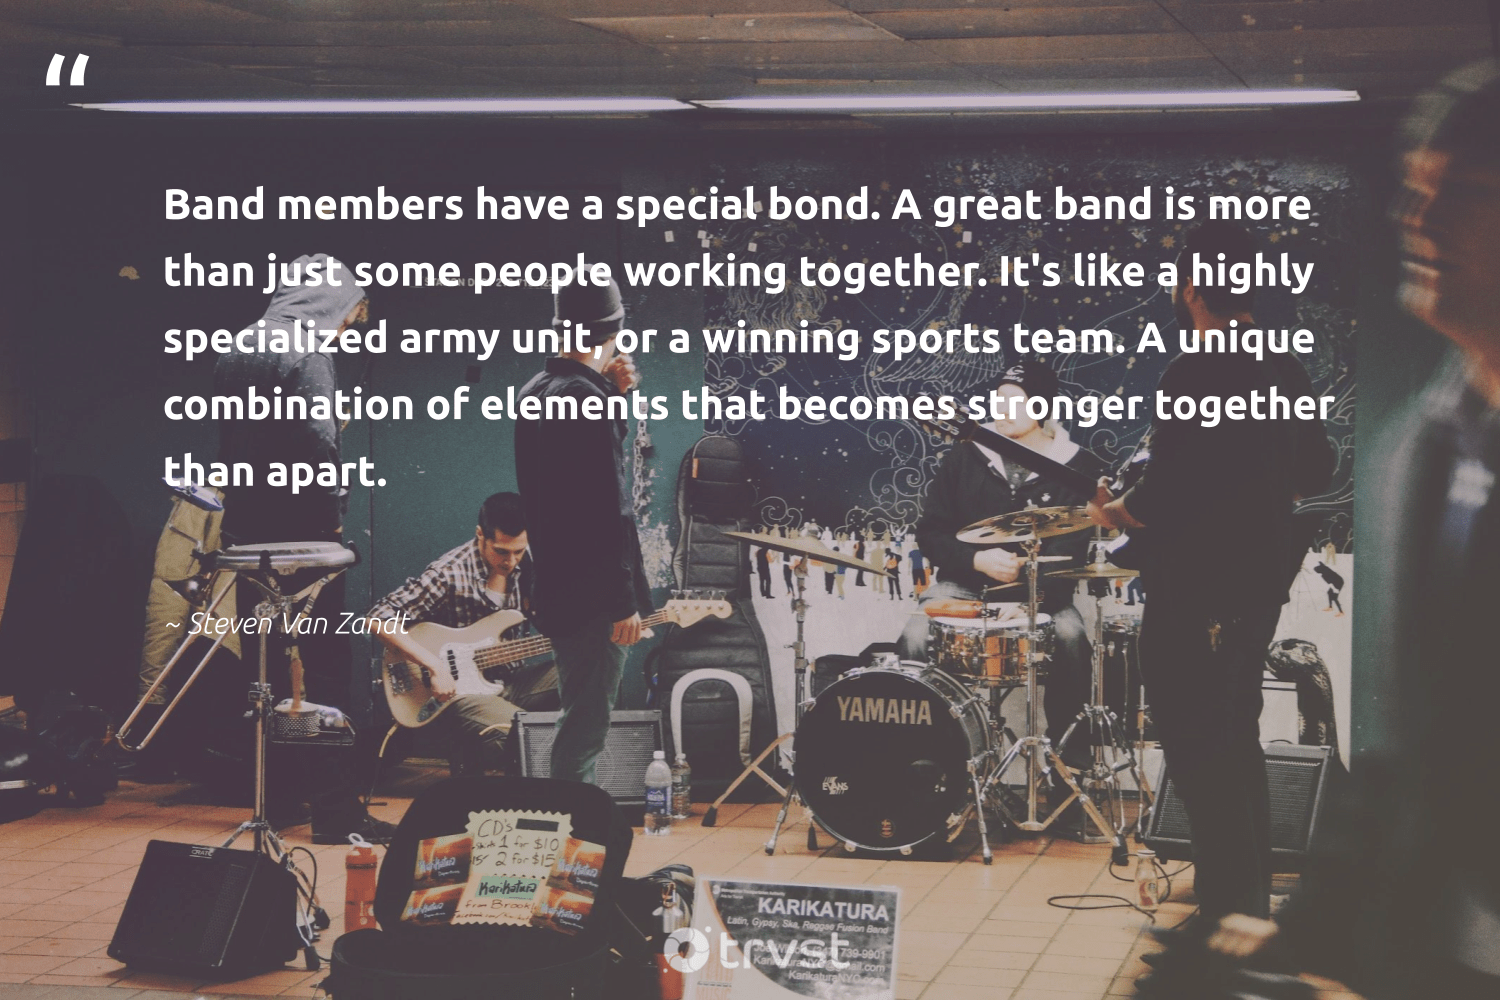 """Band members have a special bond. A great band is more than just some people working together. It's like a highly specialized army unit, or a winning sports team. A unique combination of elements that becomes stronger together than apart.""  - Steven Van Zandt #trvst #quotes #workingtogether #begreat #dotherightthing #softskills #socialimpact #nevergiveup #bethechange #futureofwork #changetheworld #gogreen"